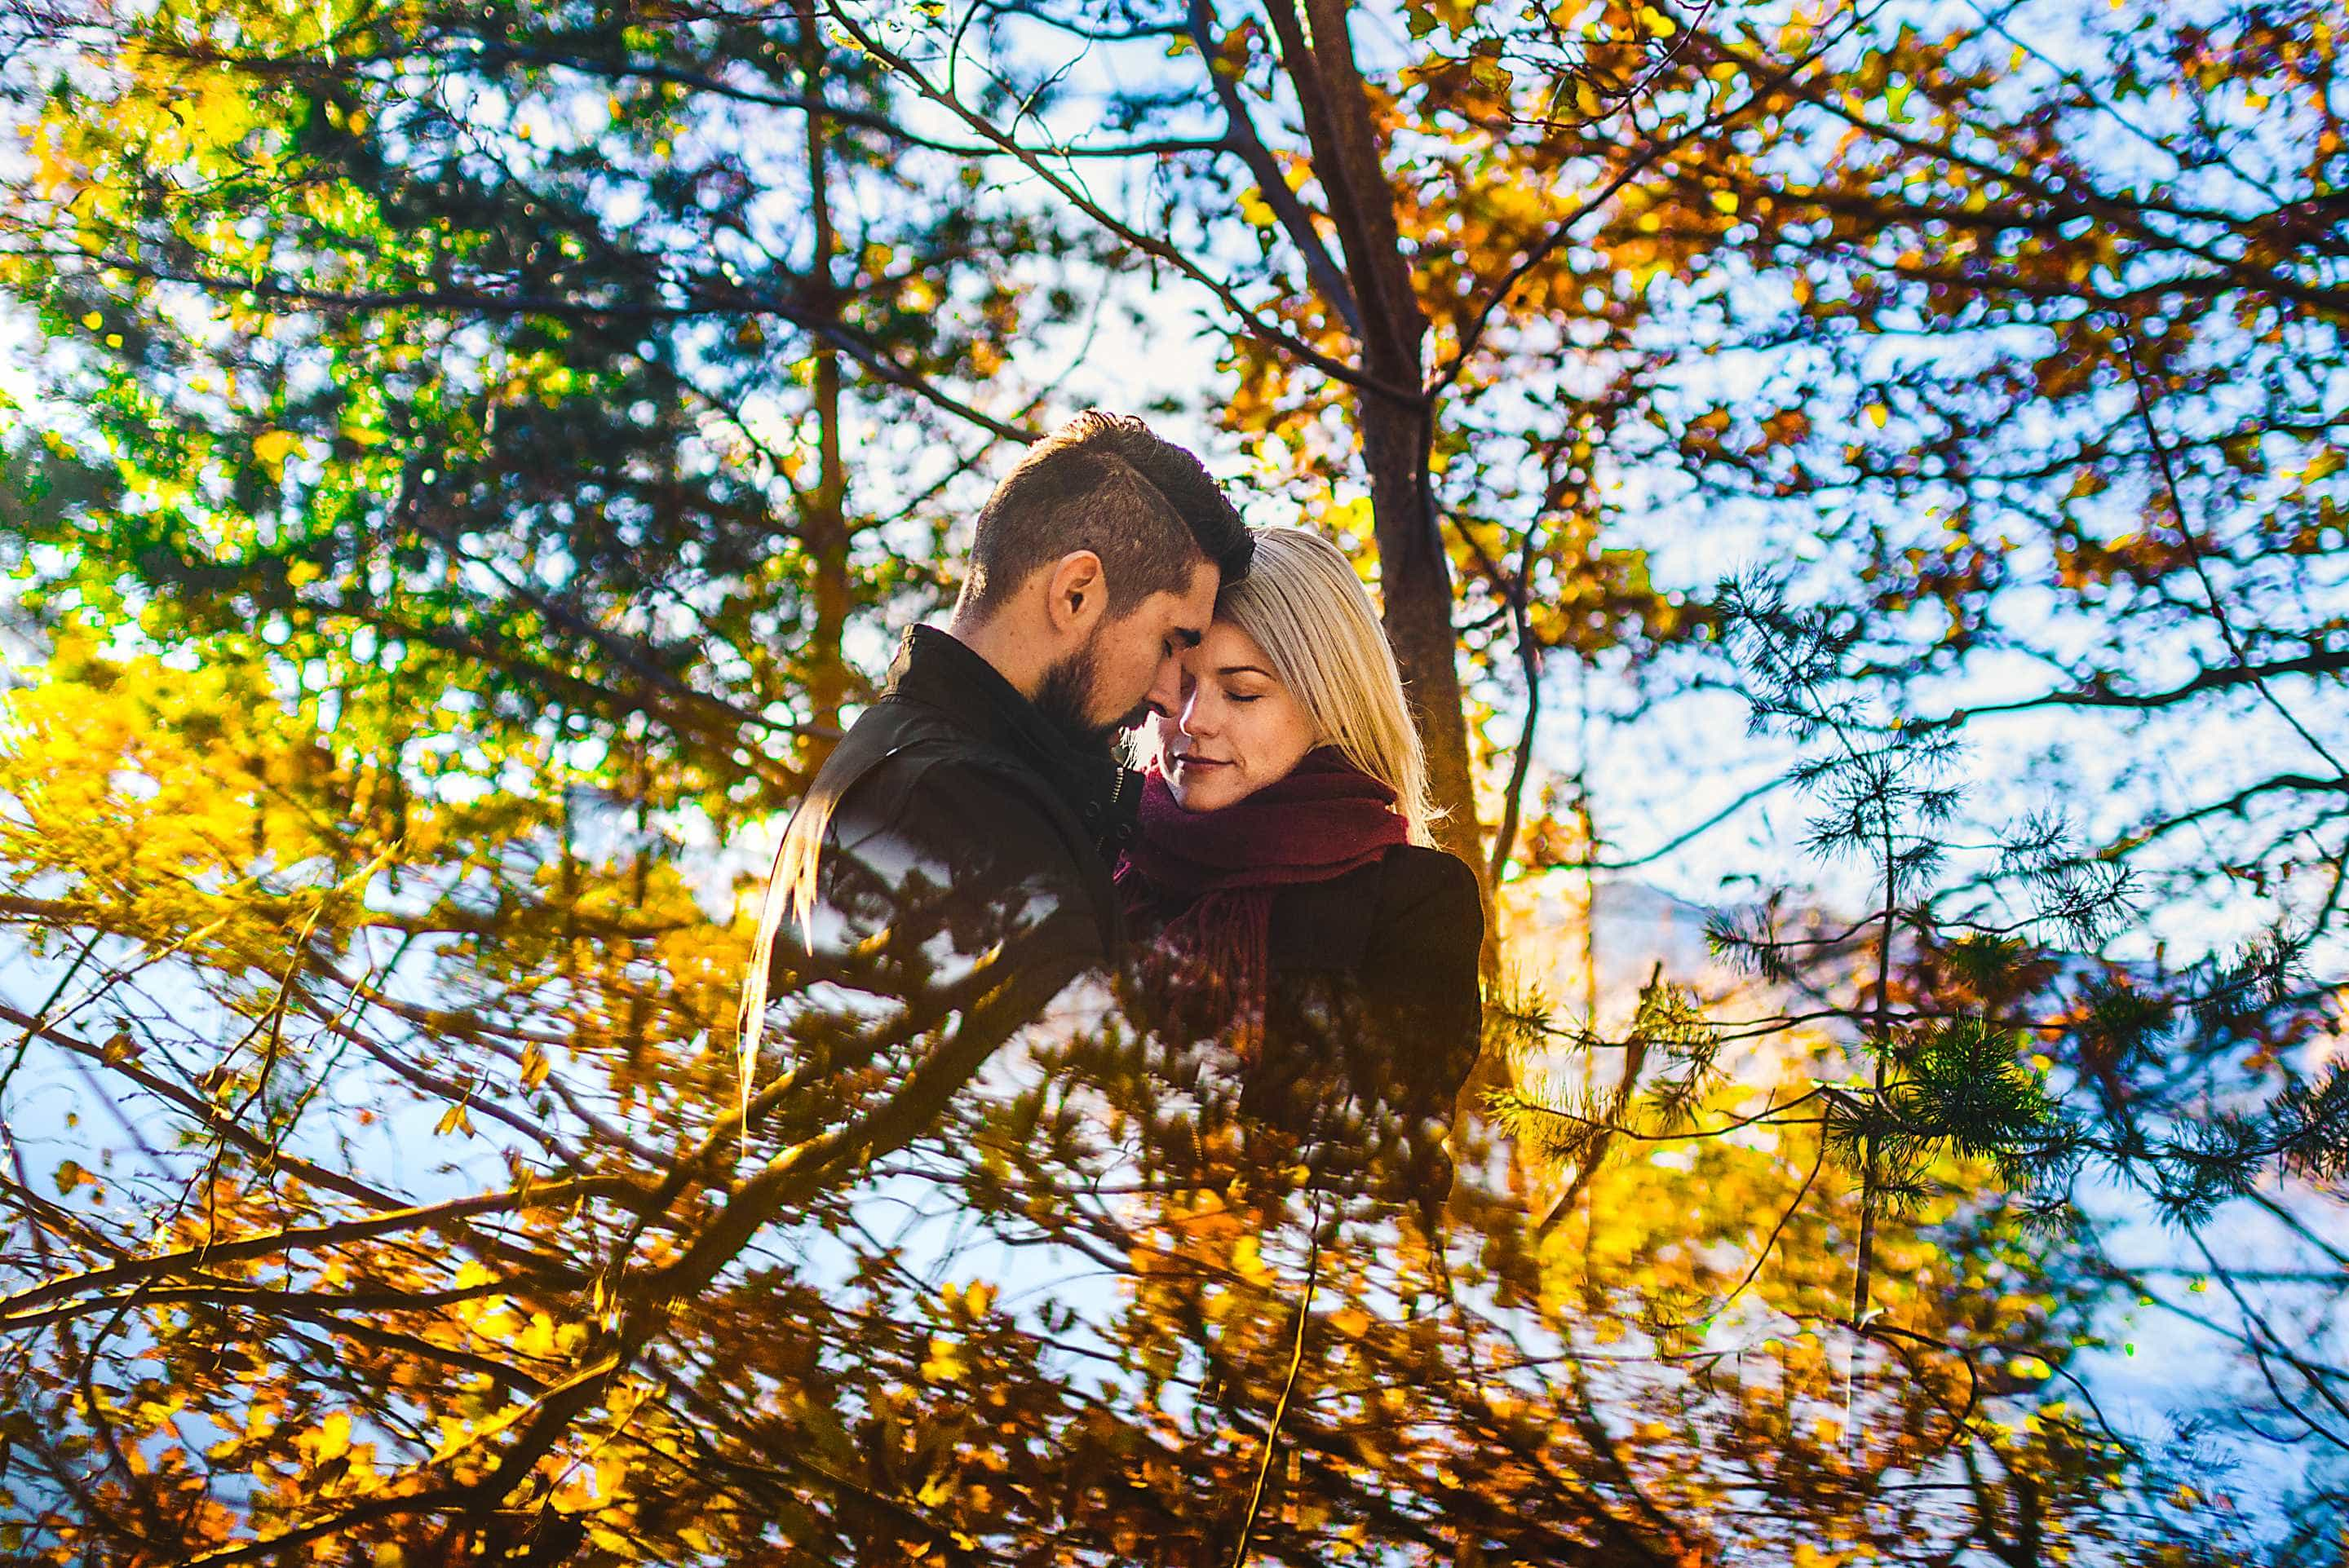 Wedding photography workshops in Norway